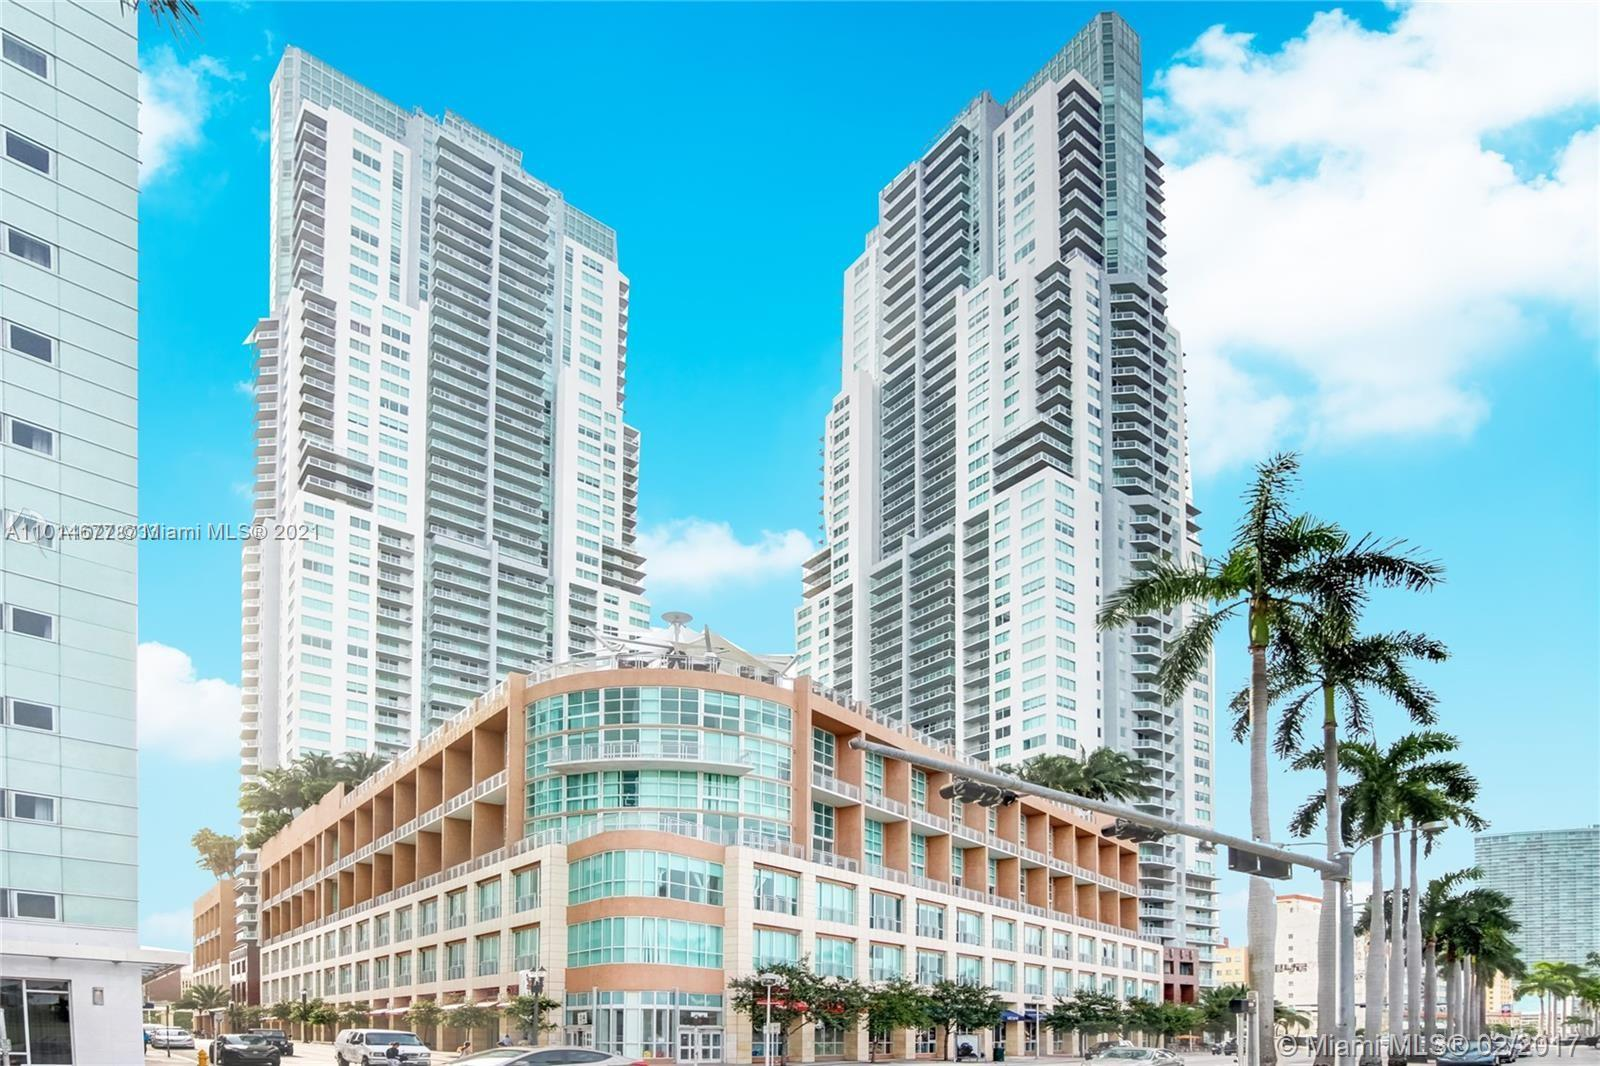 One of the most beautiful units, 2 bedroom, 2 baths,  floor to ceiling windows with ocean views of skyline and bay. Amenities include 24hr welcome and concierge center, resort style, mezzanine with heated whirlpool, family areas, men and women steam rooms, fully equipped technologically advanced fitness center and lounge. Walking distance to Bay Side and AAA. Good for investors.